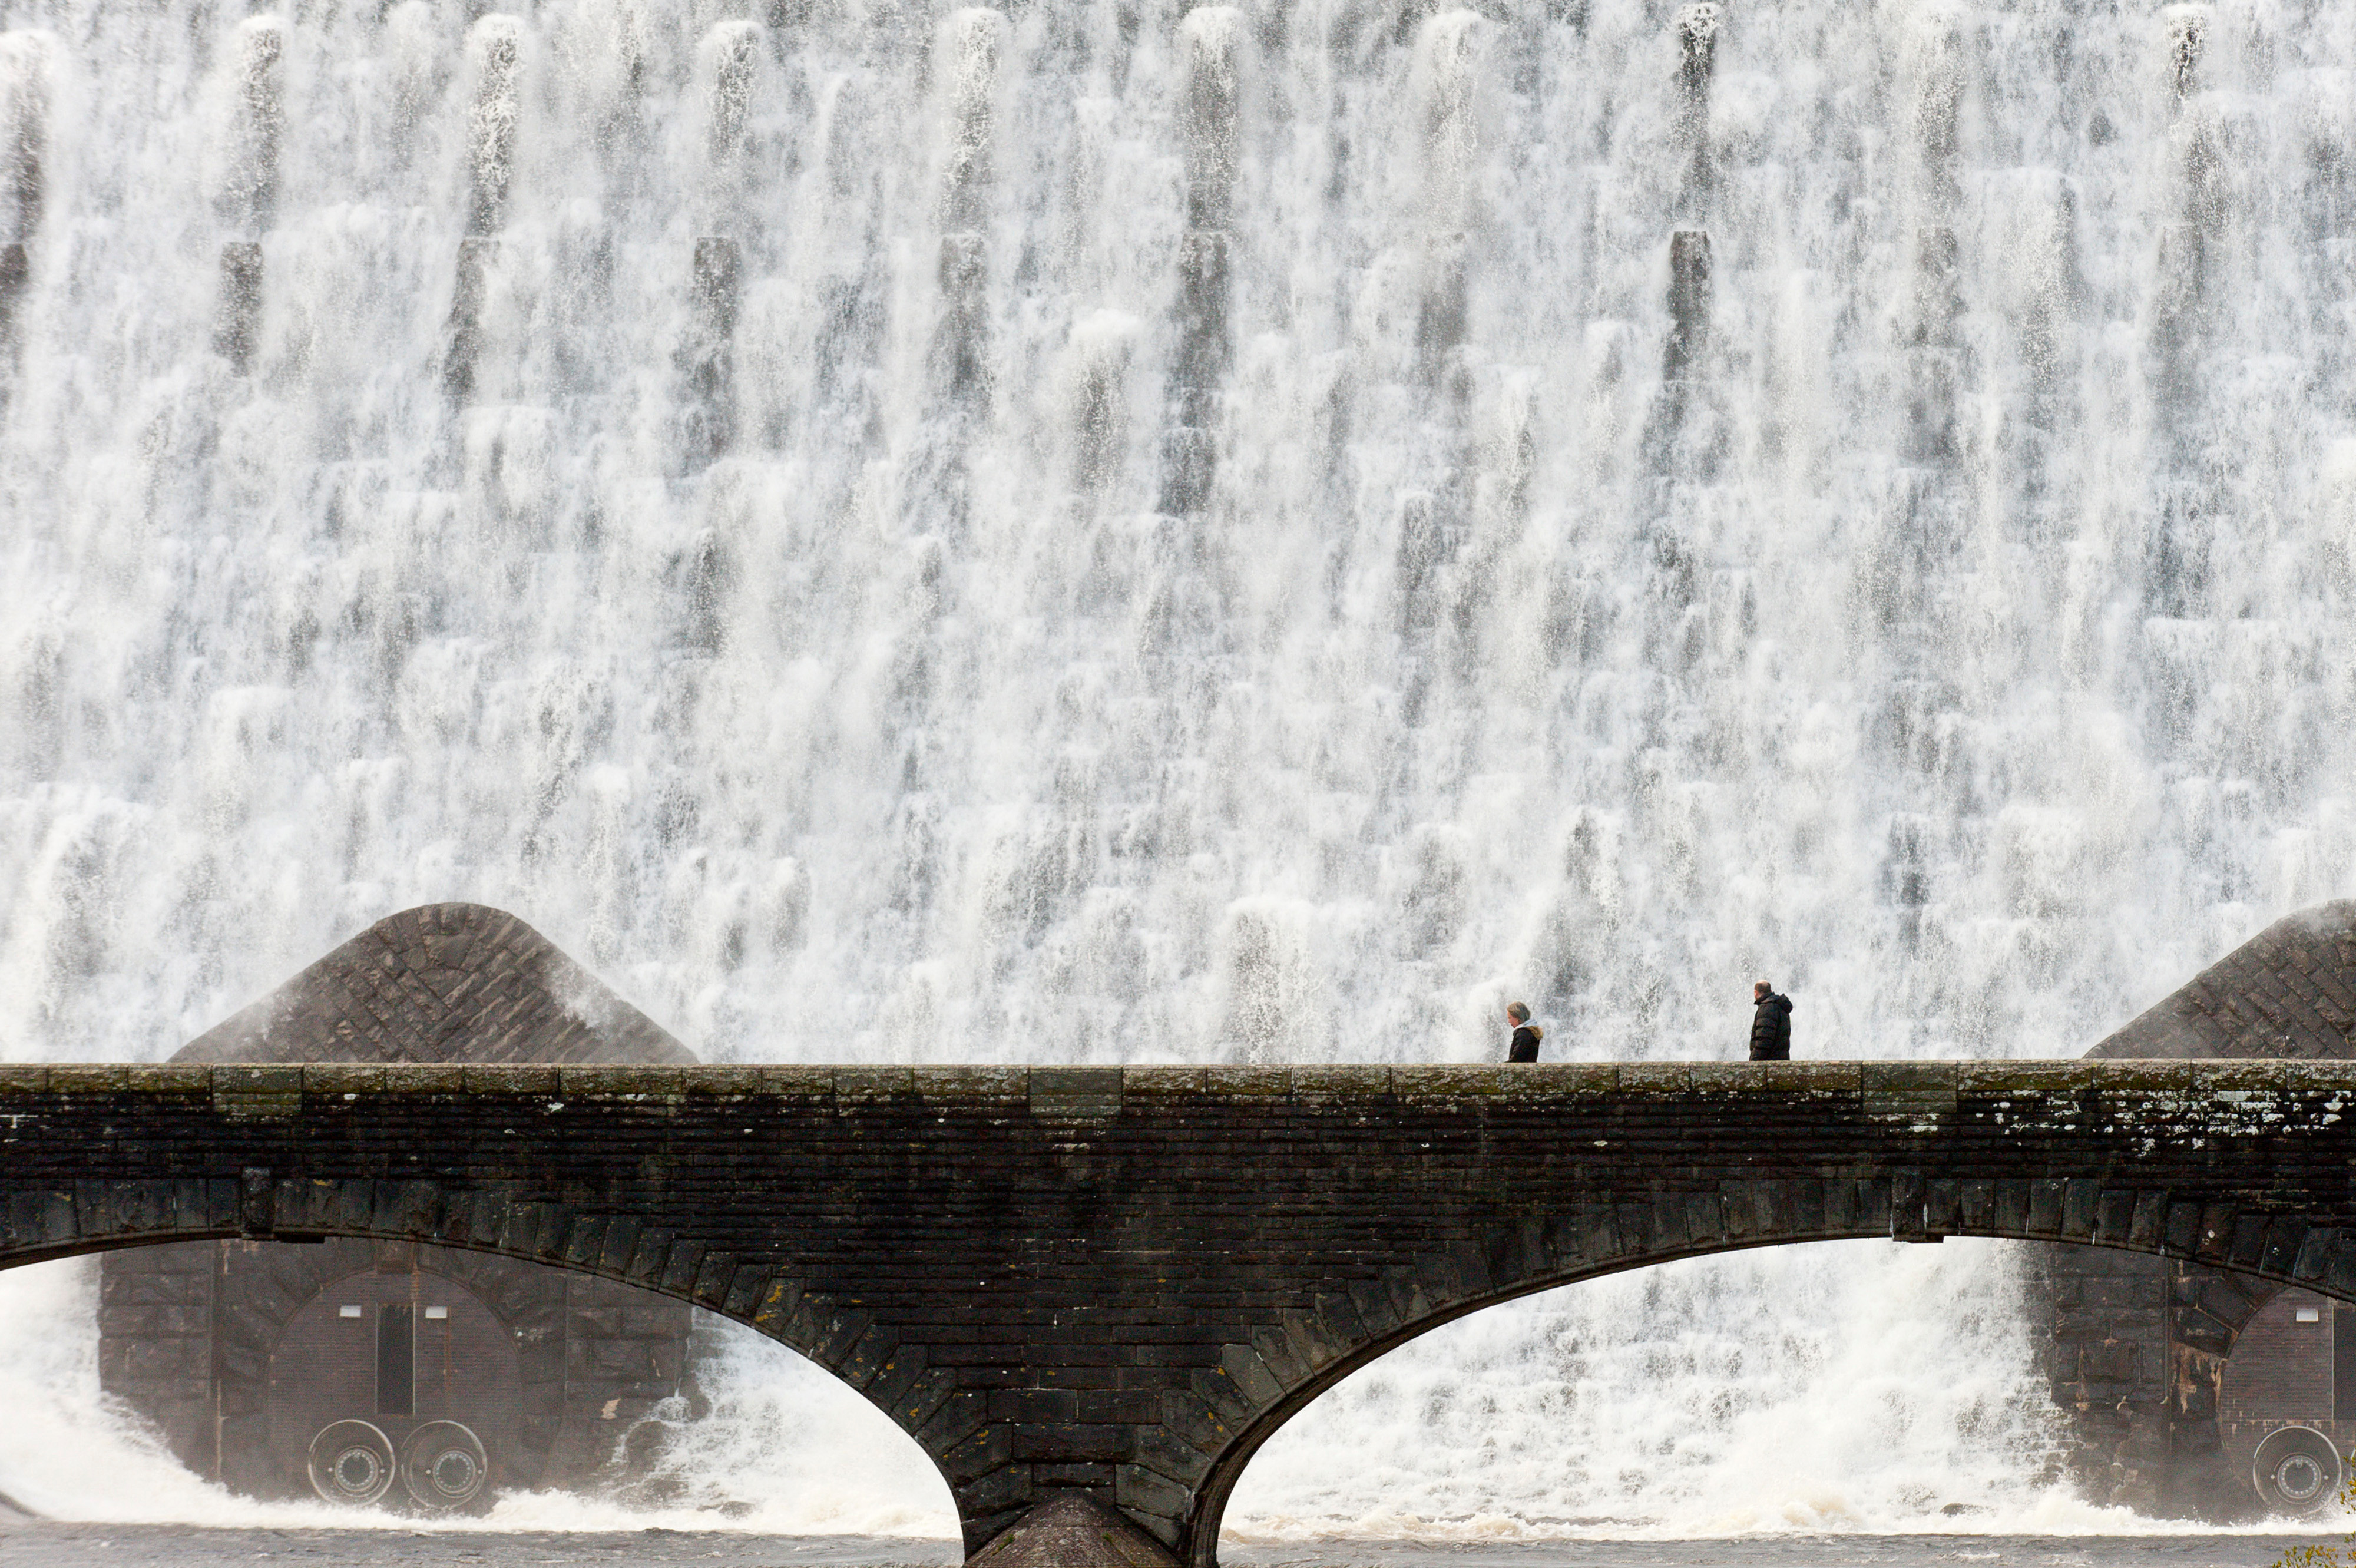 Water cascades over the Caban Coch Dam in Elan Valley, near Rhayader in Powys